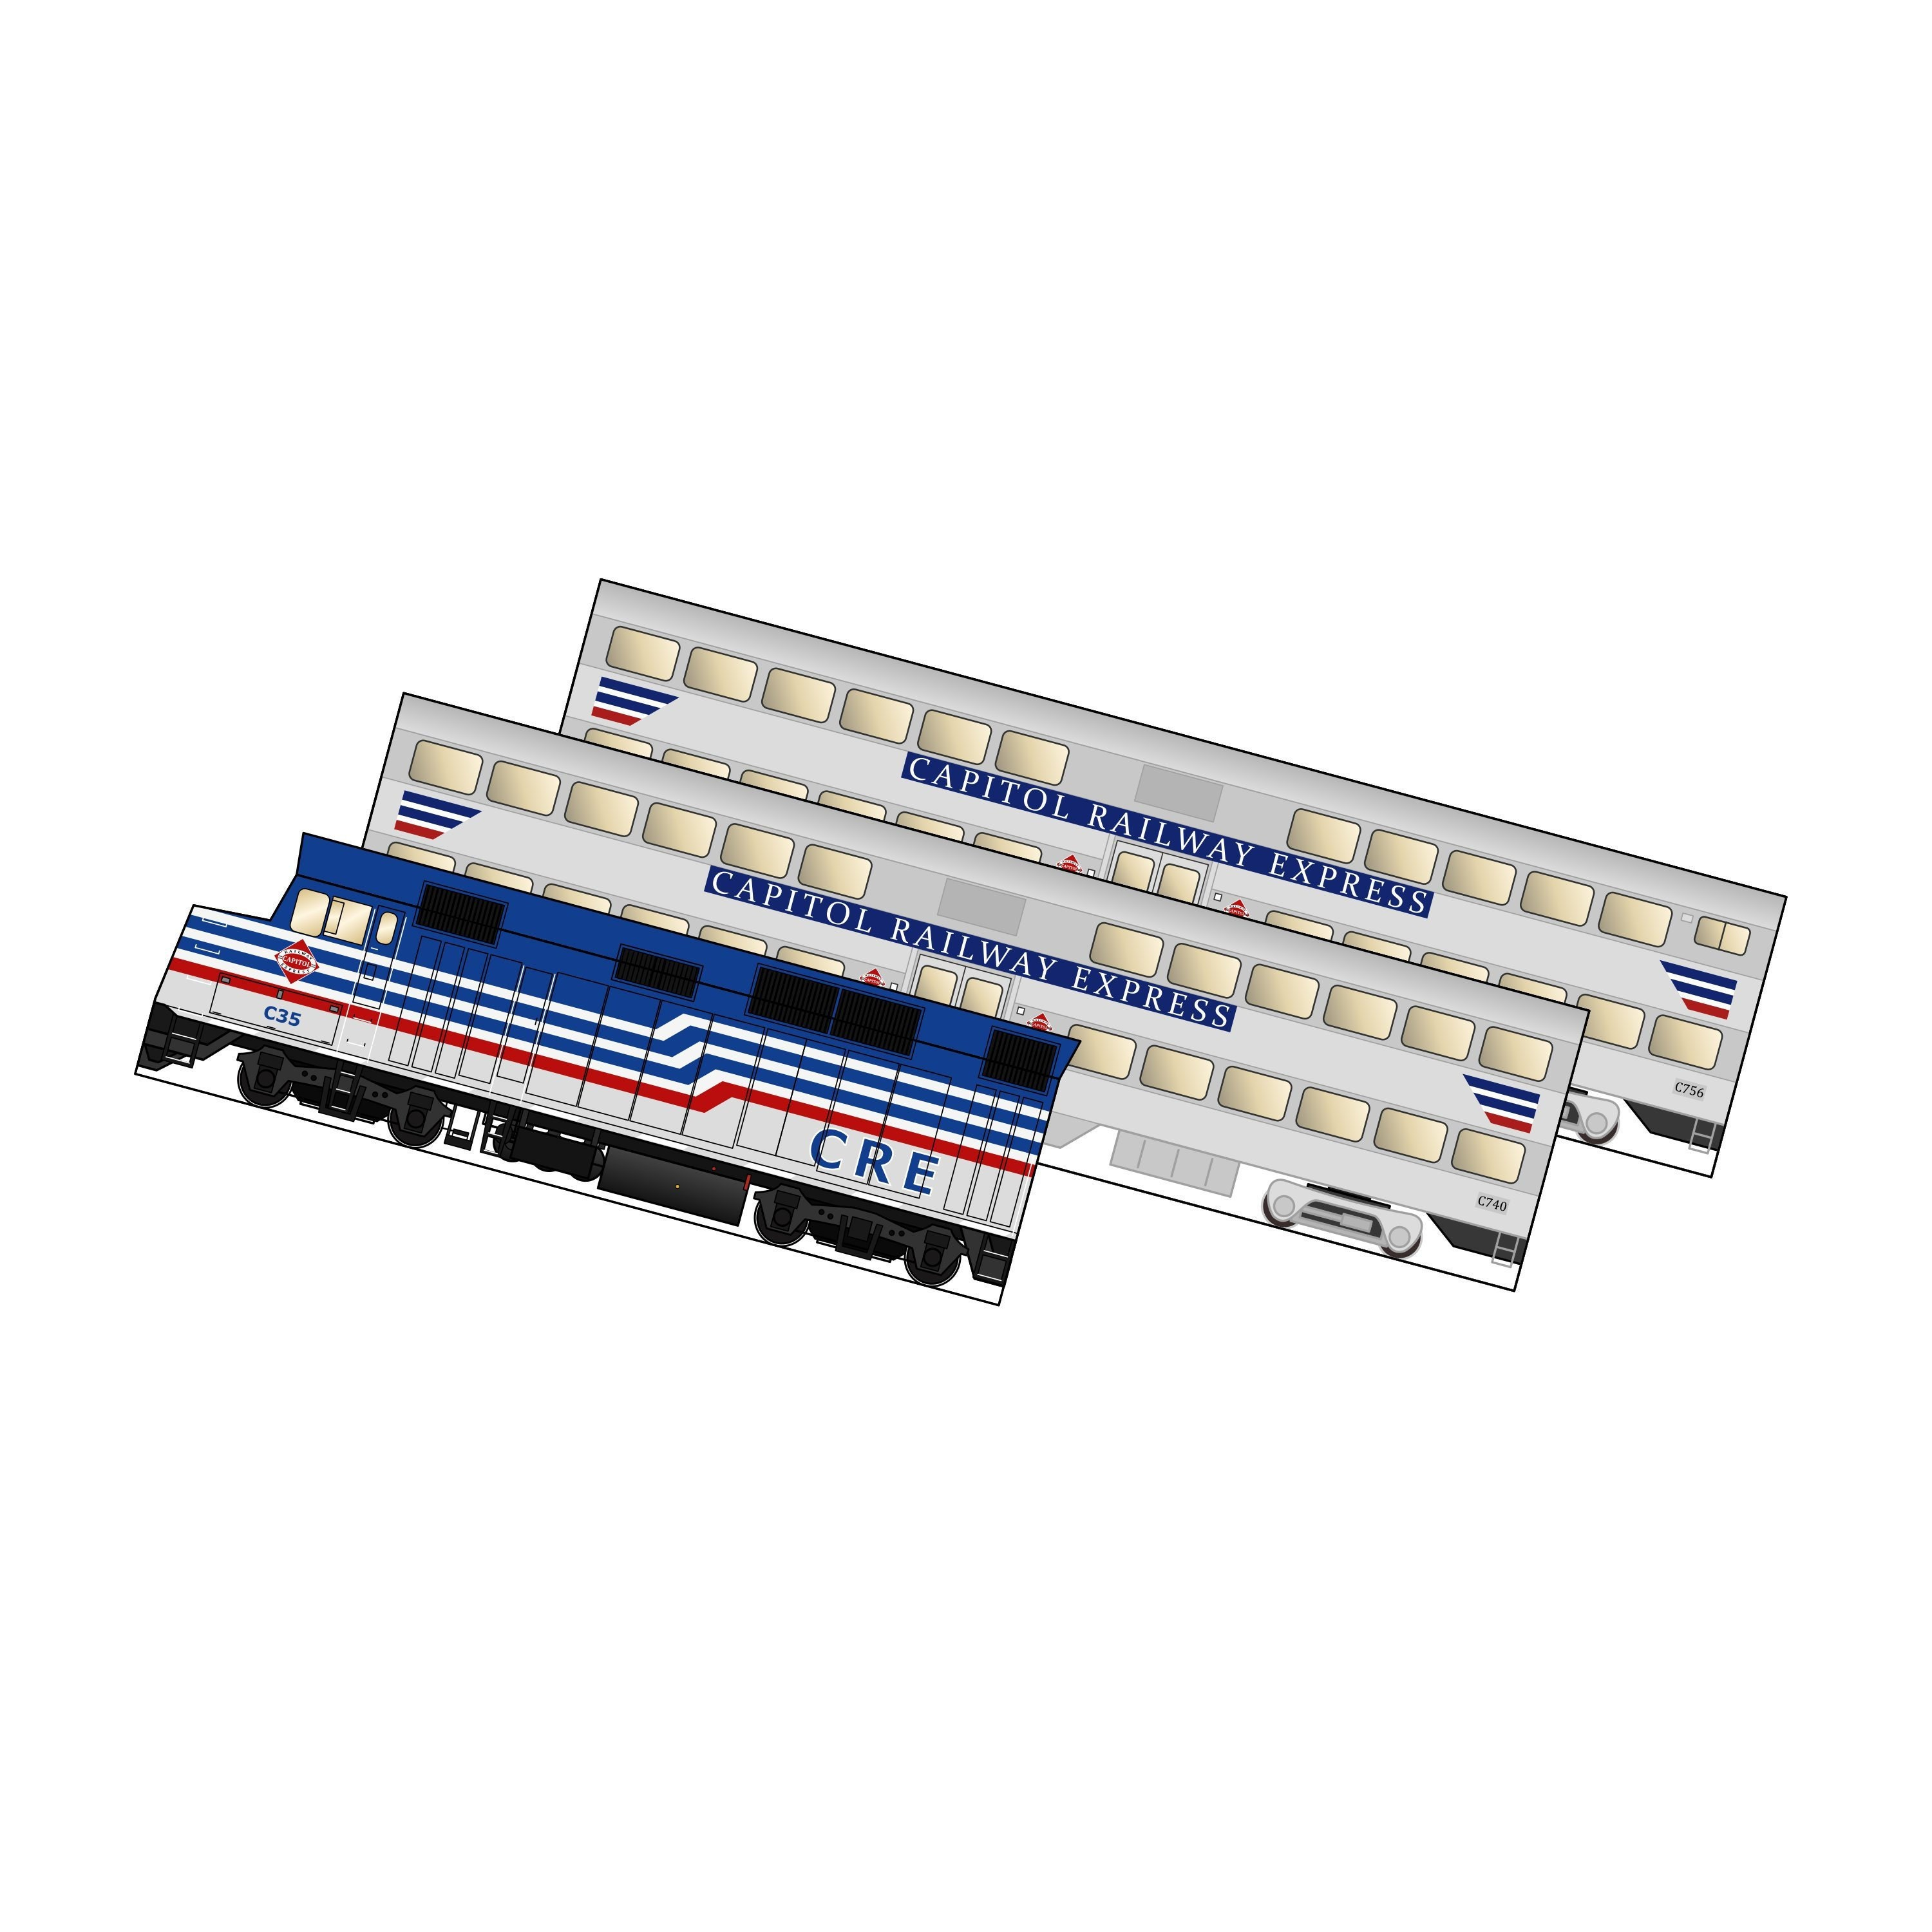 Model Train, DIY Project, 3D model, Craft Activity, Papermodel, Train  Decor, Washington DC, Virginia, VRE